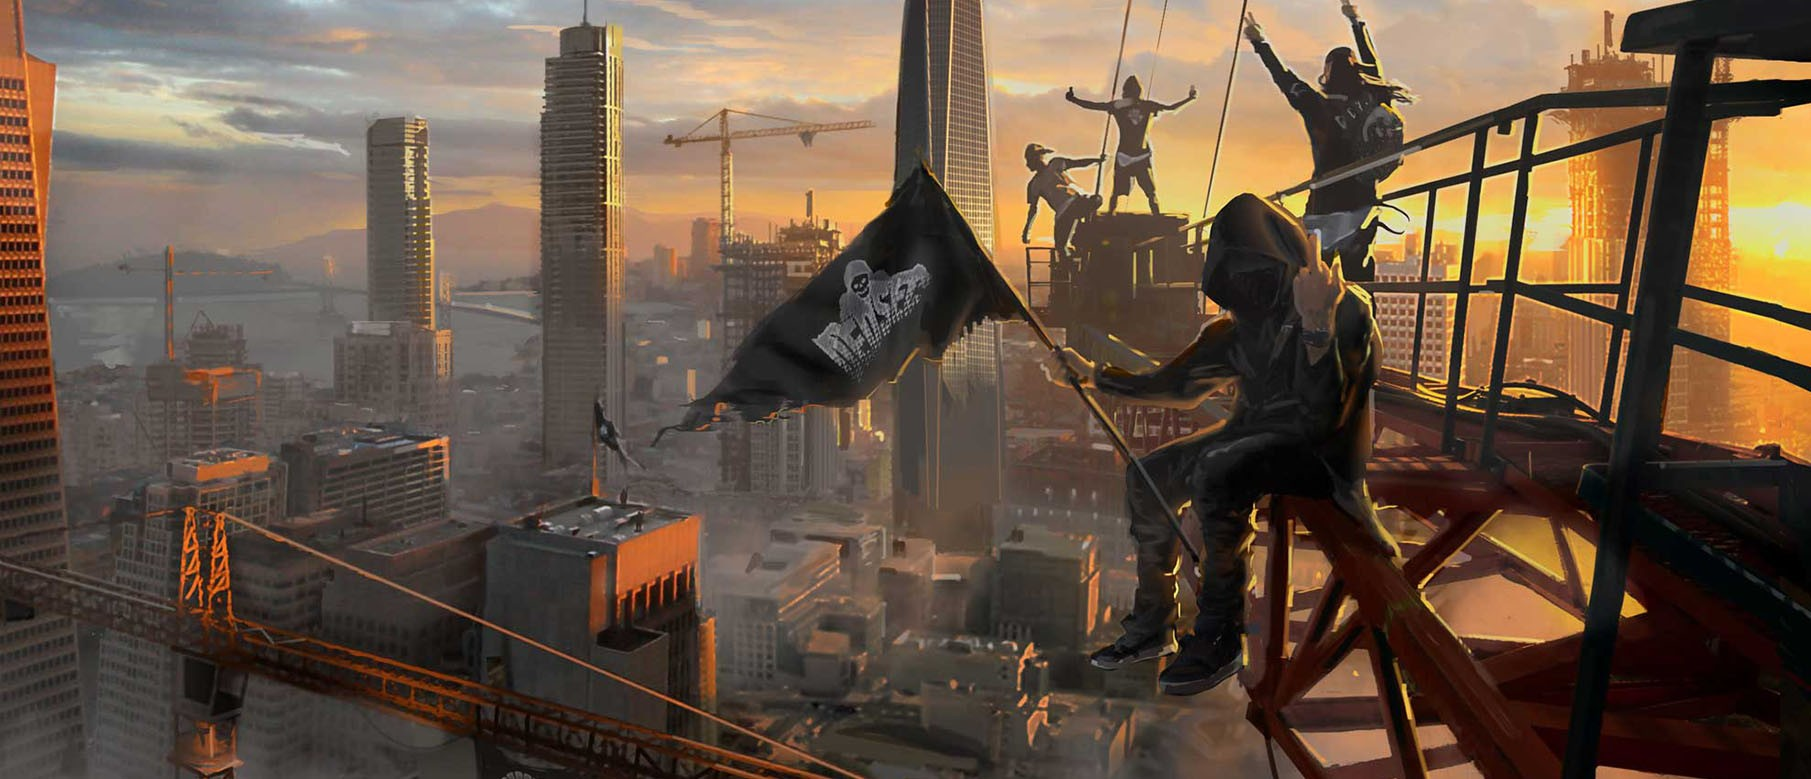 Изображение к Сюжетный трейлер Watch Dogs 2